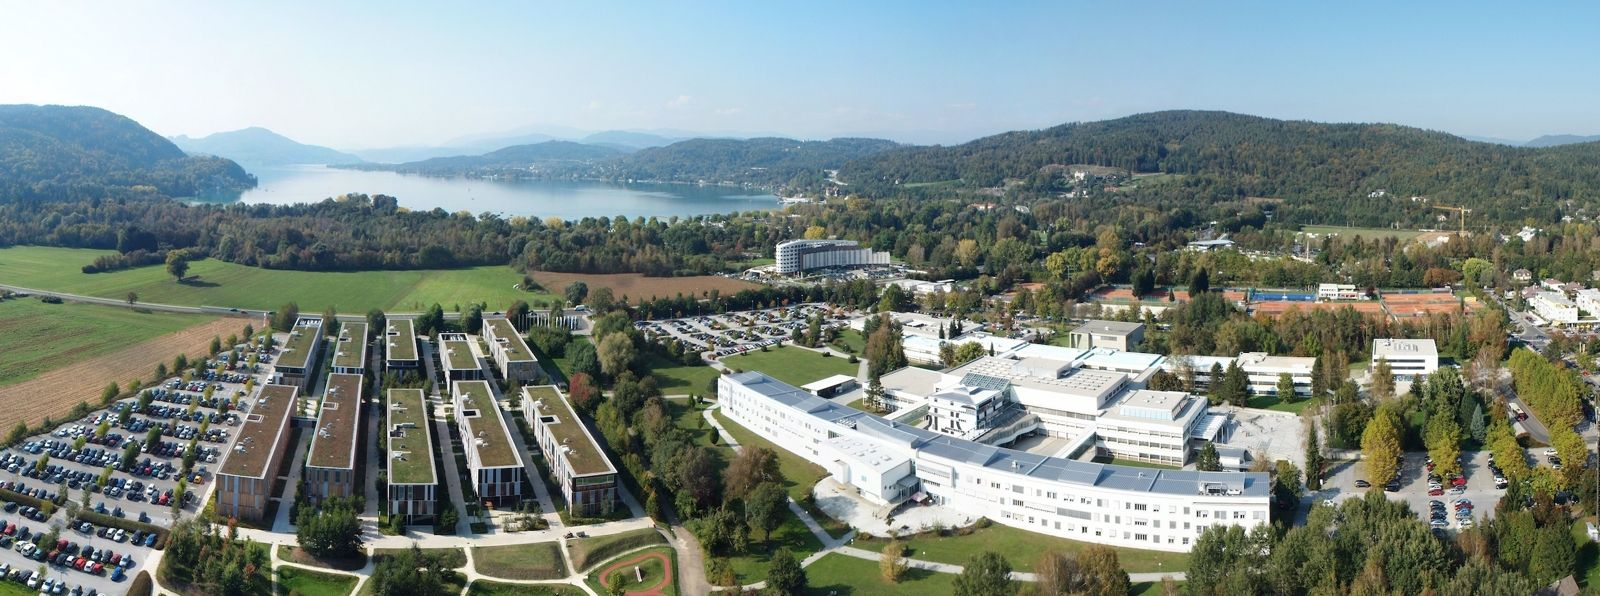 Alpen-Adria-Universität Klagenfurt und der angrenzende Lakeside Science & Technology Park